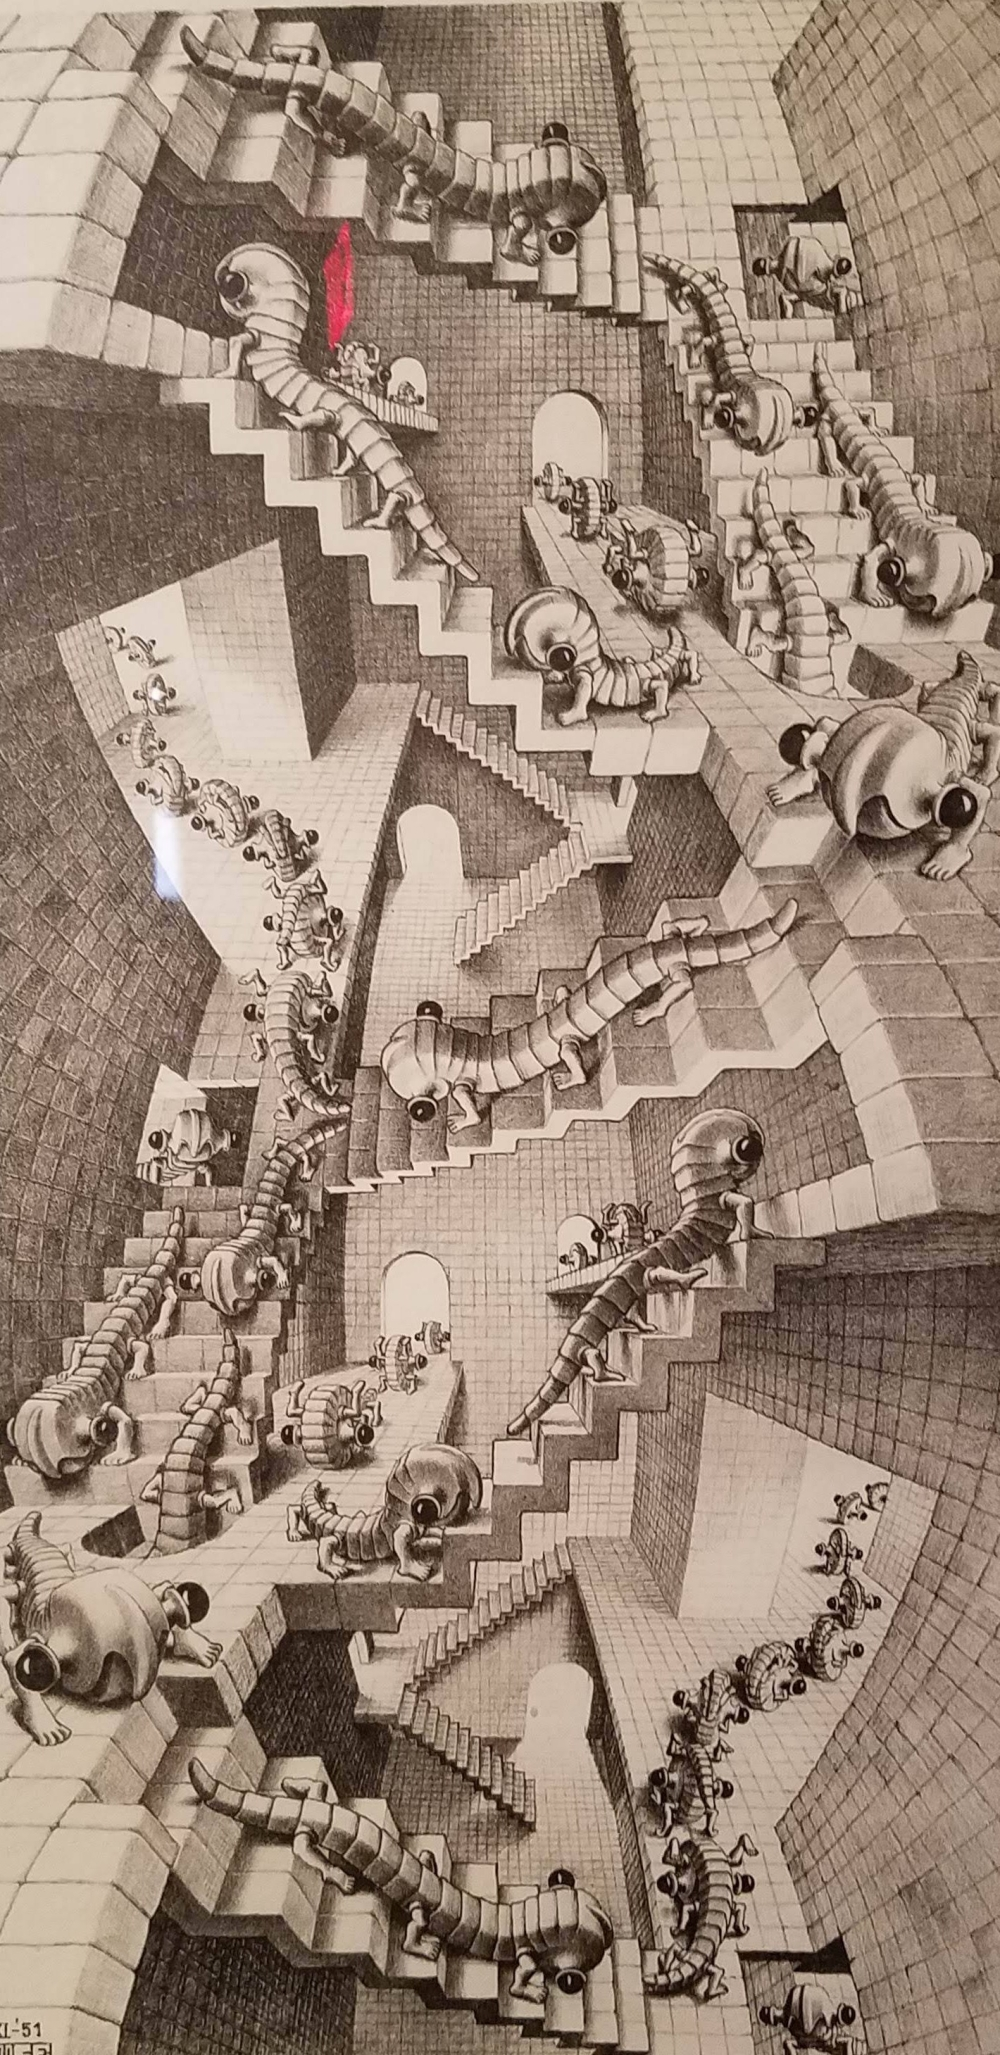 Escher Insects on Stairs